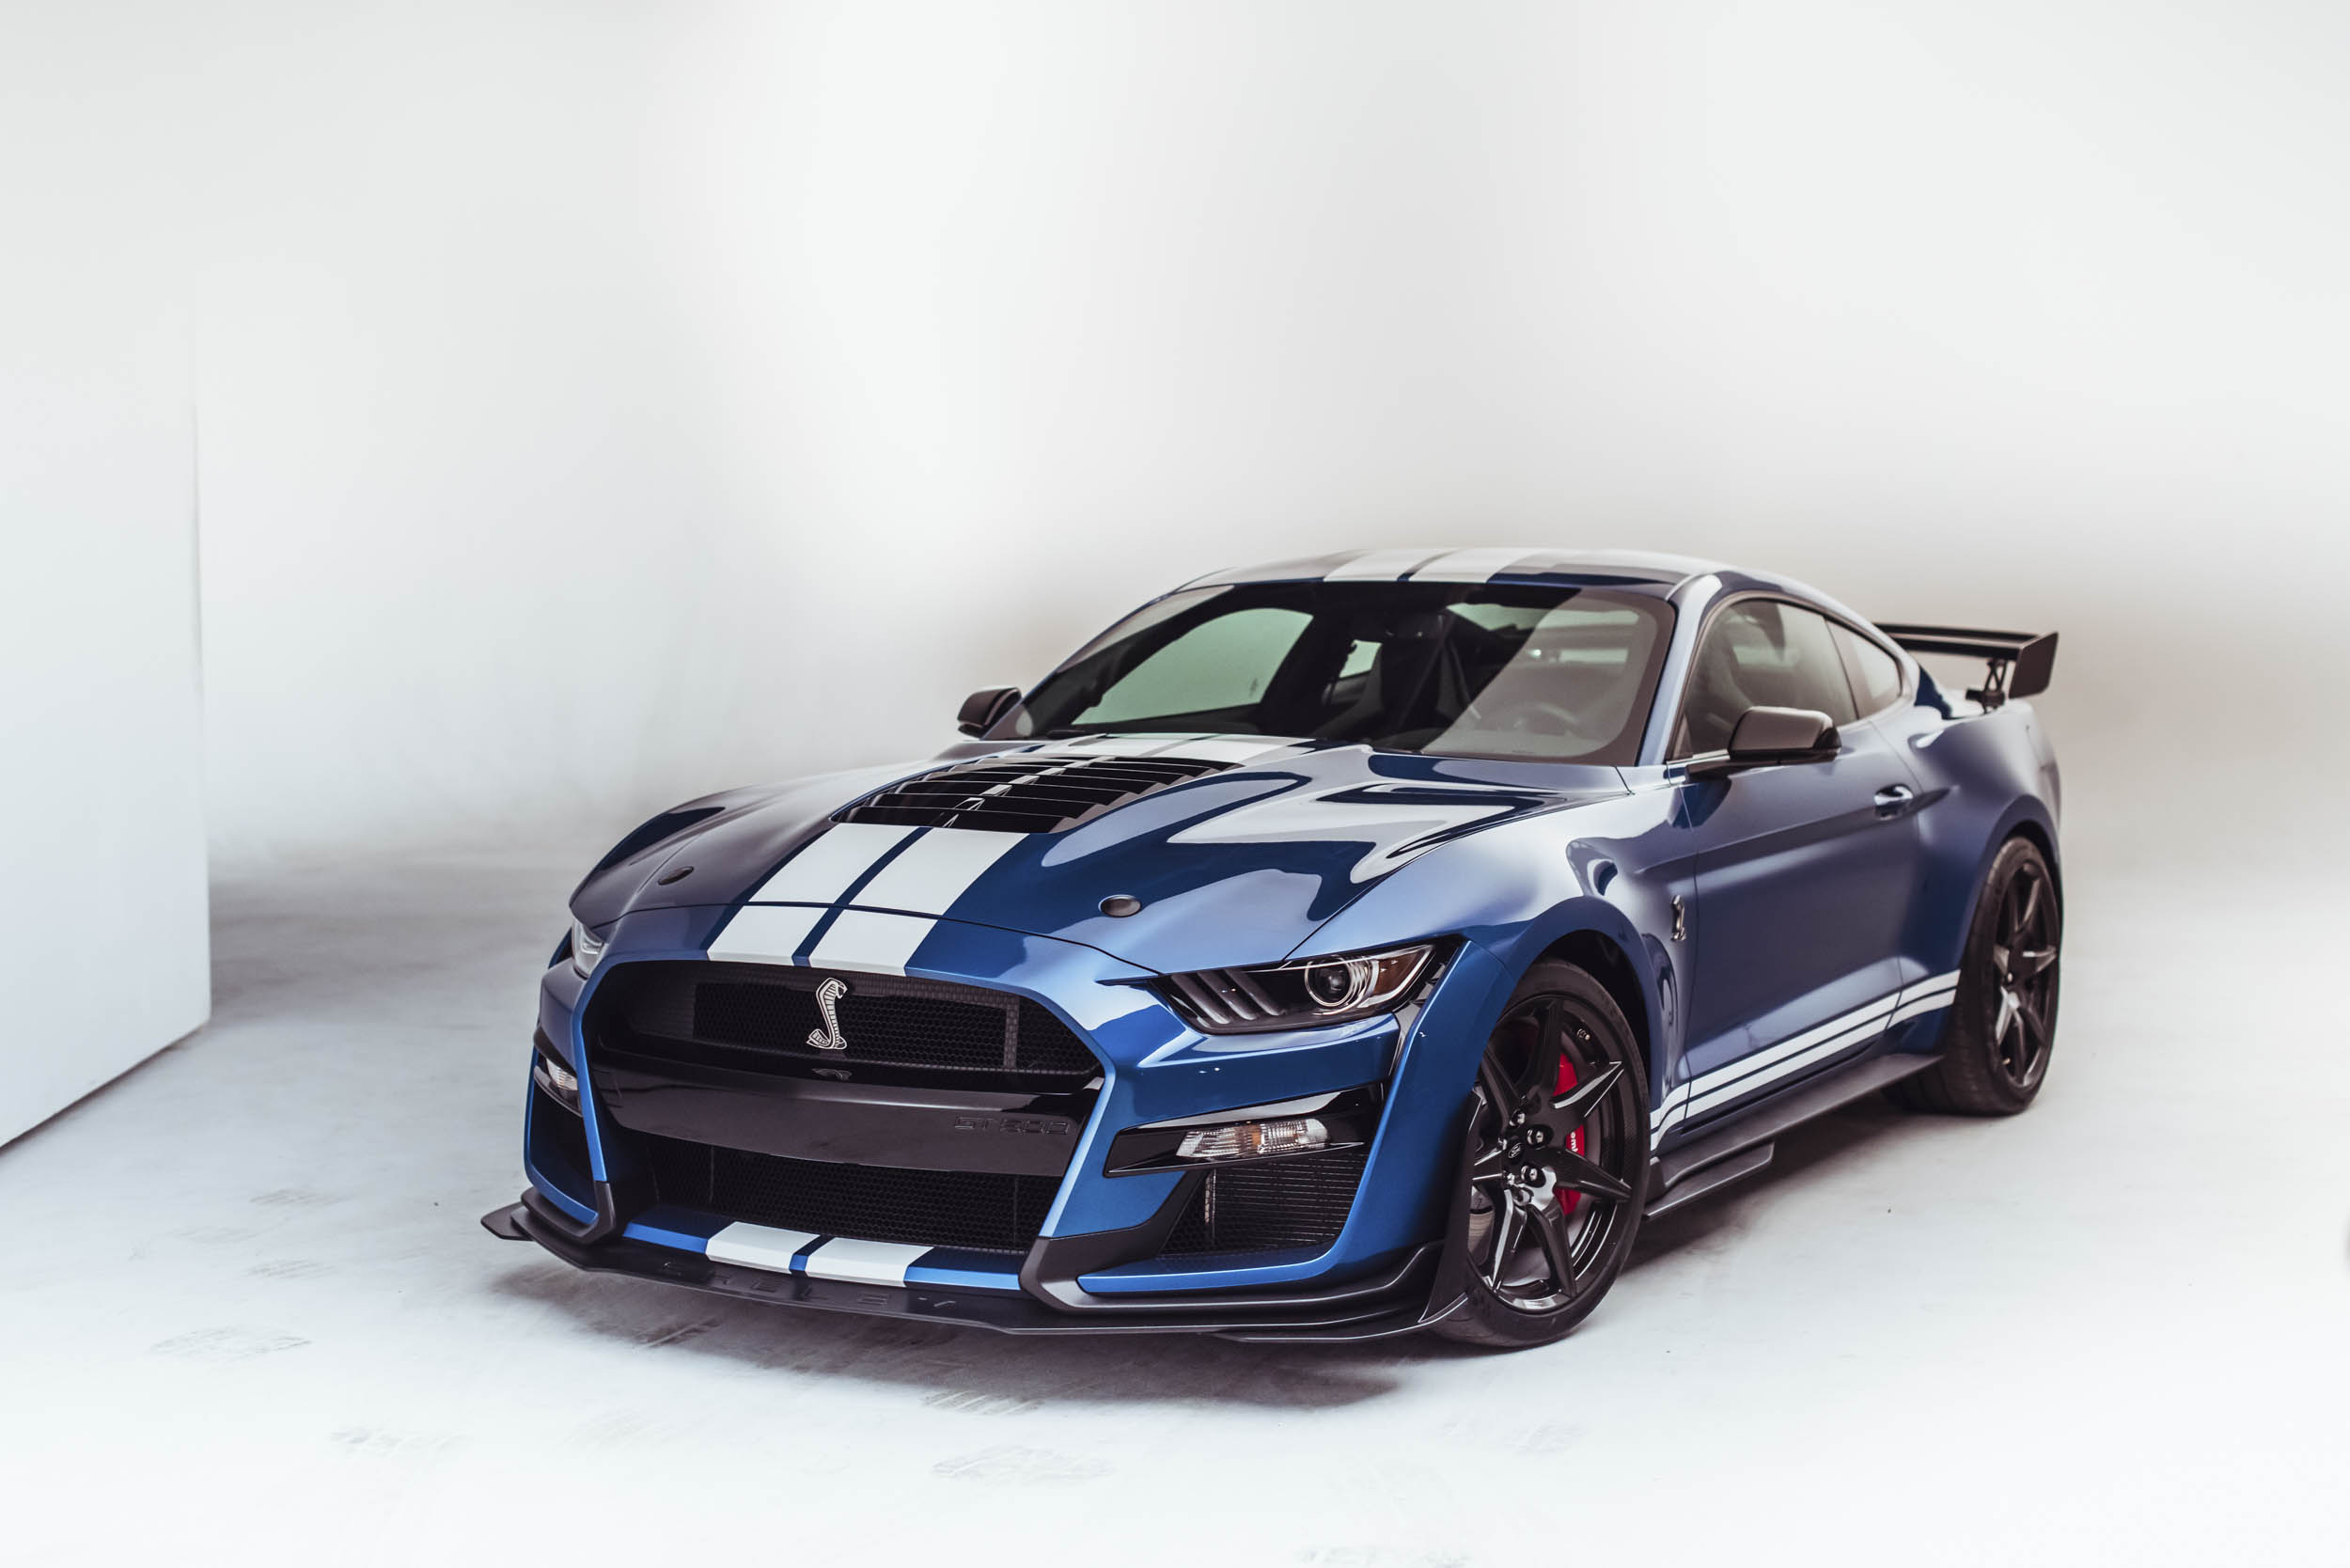 2020 Shelby GT500 front 3/4